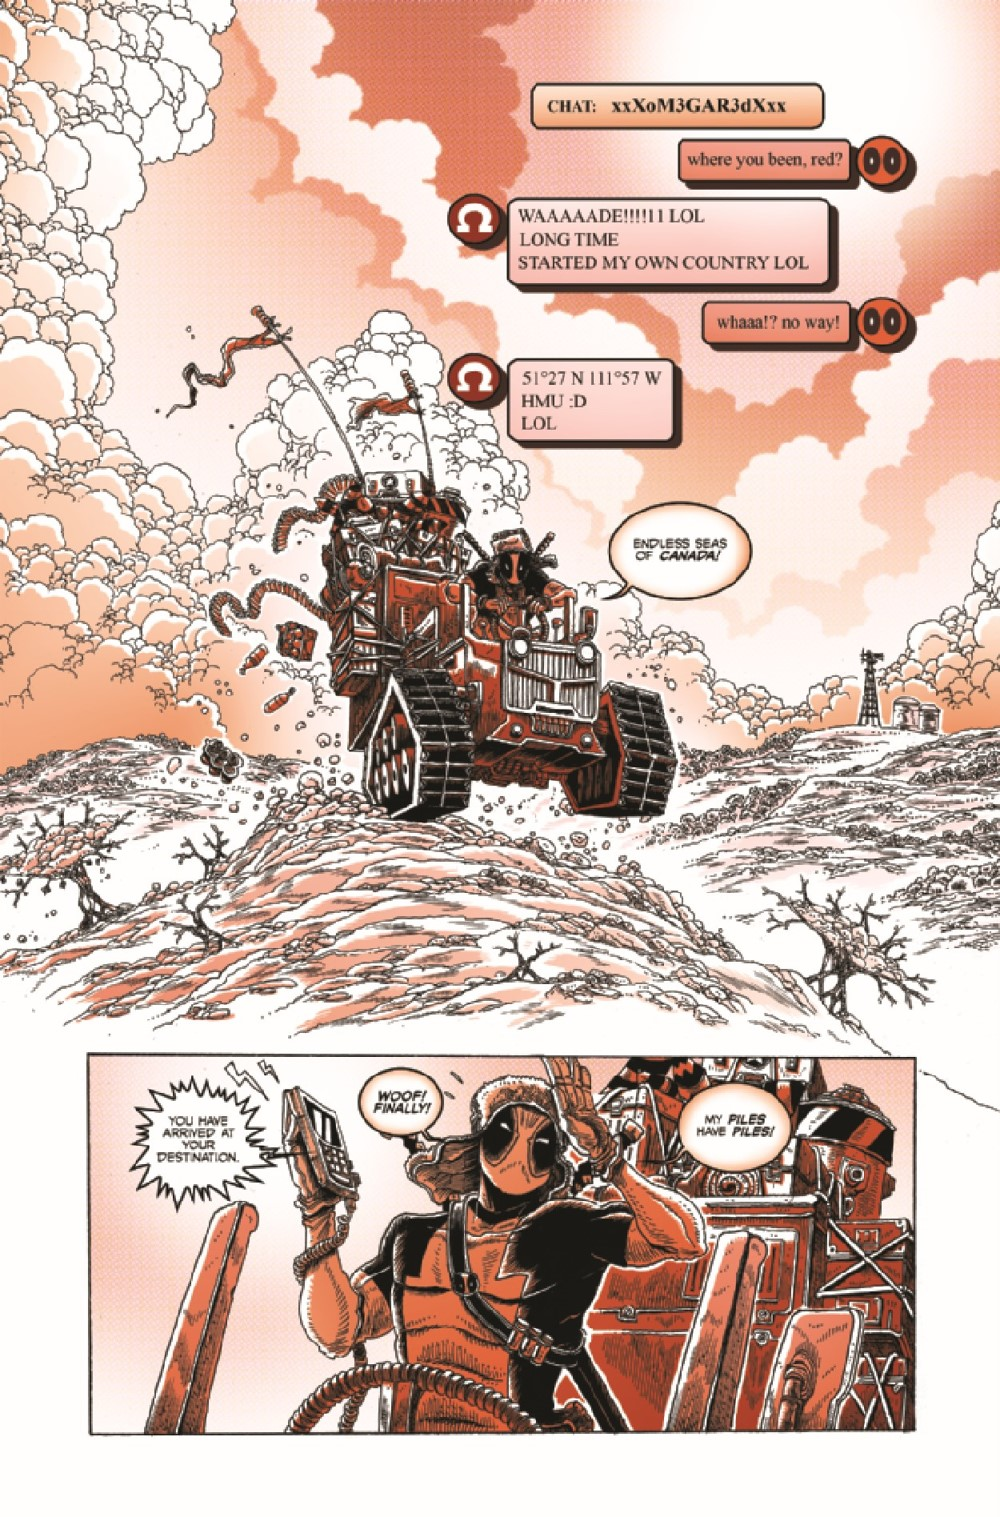 DPOOLBLKWHBL2021001_Preview-6 ComicList Previews: DEADPOOL BLACK WHITE AND BLOOD #1 (OF 4)